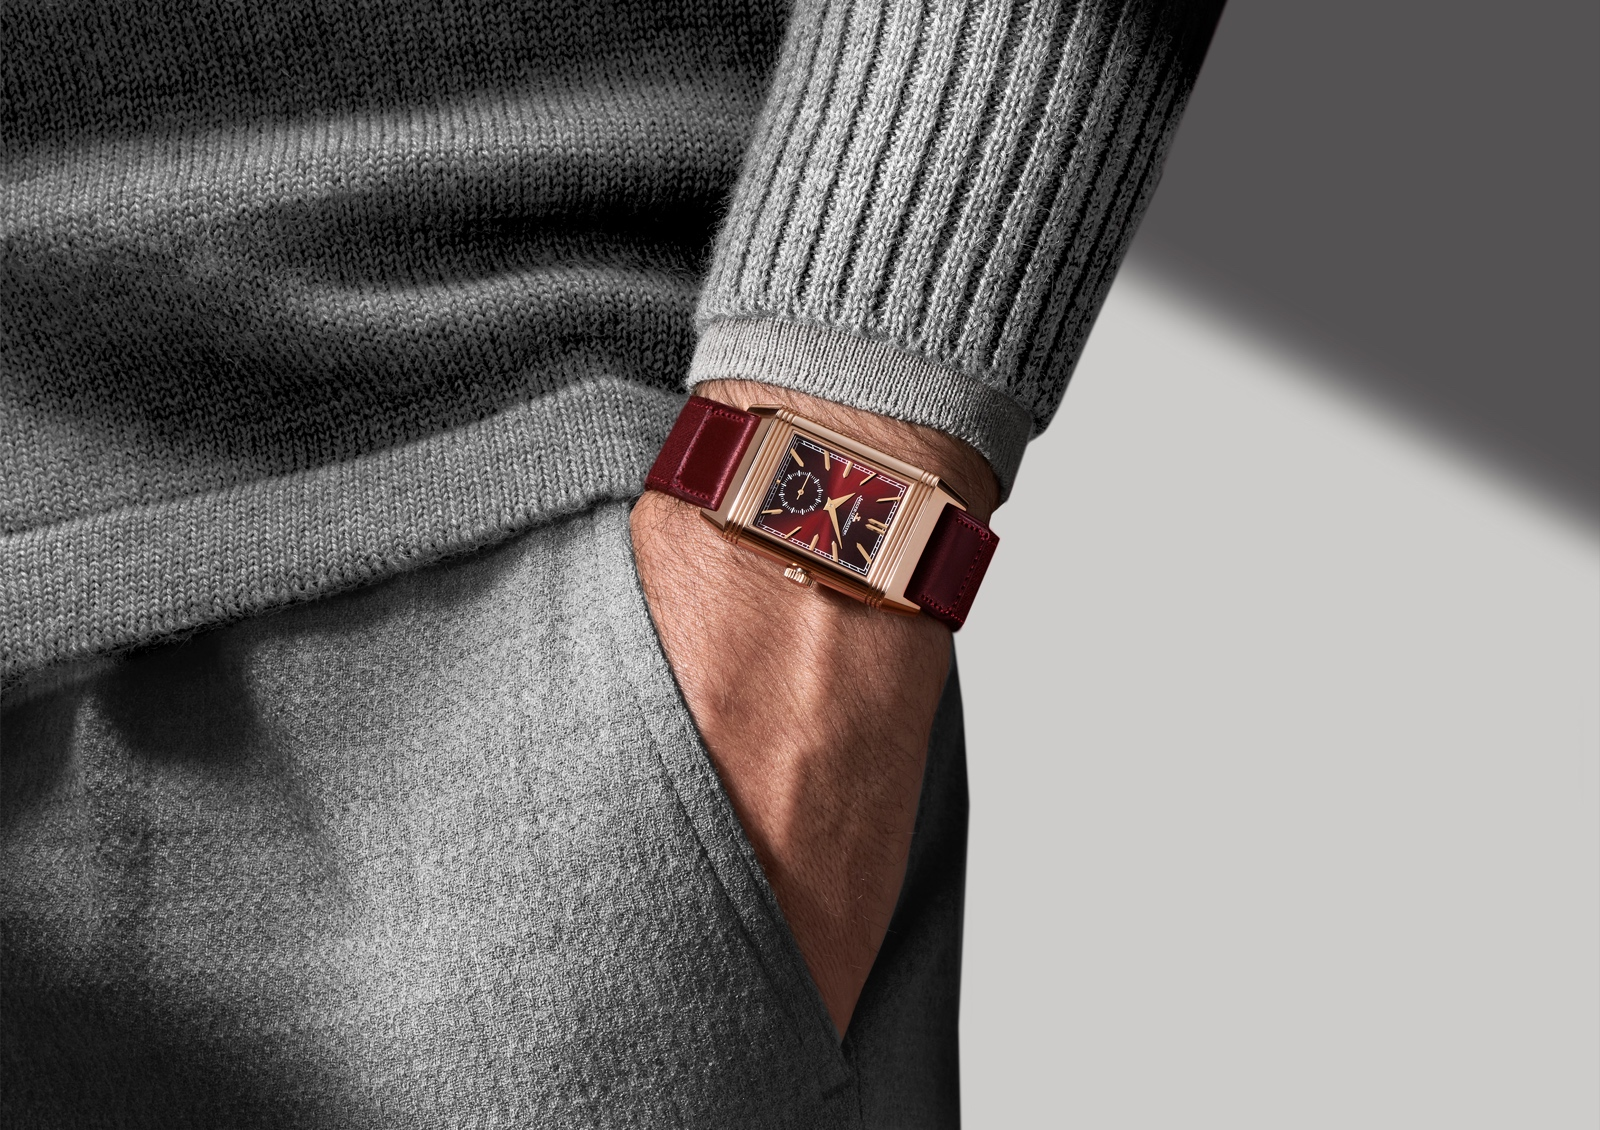 Jaeger-LeCoultre Reverso Tribute Duoface Fagliano - lifestyle